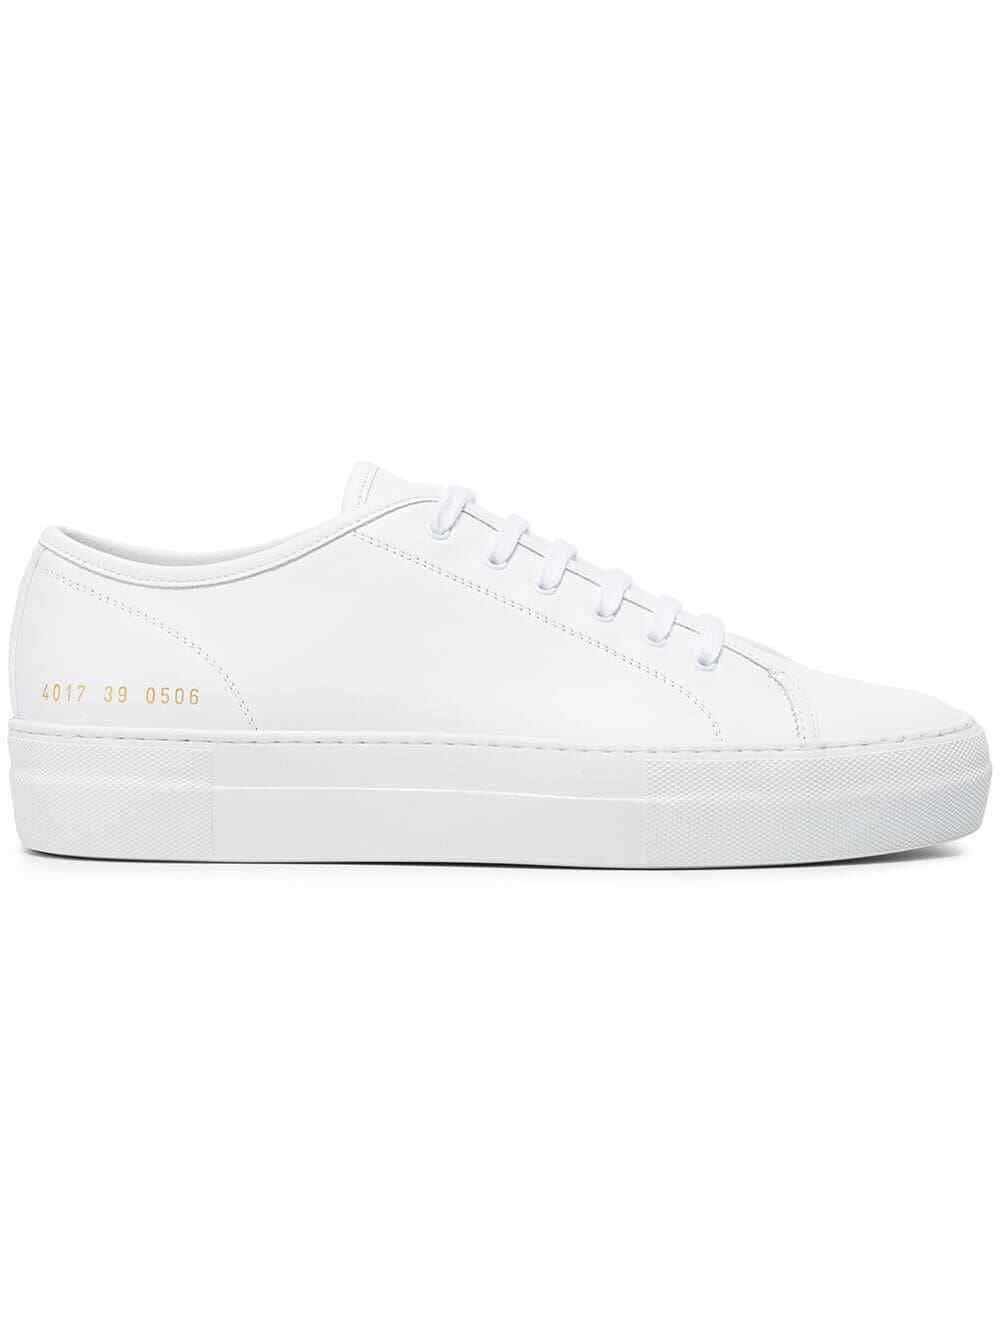 New Common Projects trainers Weiß 4017 Tournament Low Super Sole flatform woman